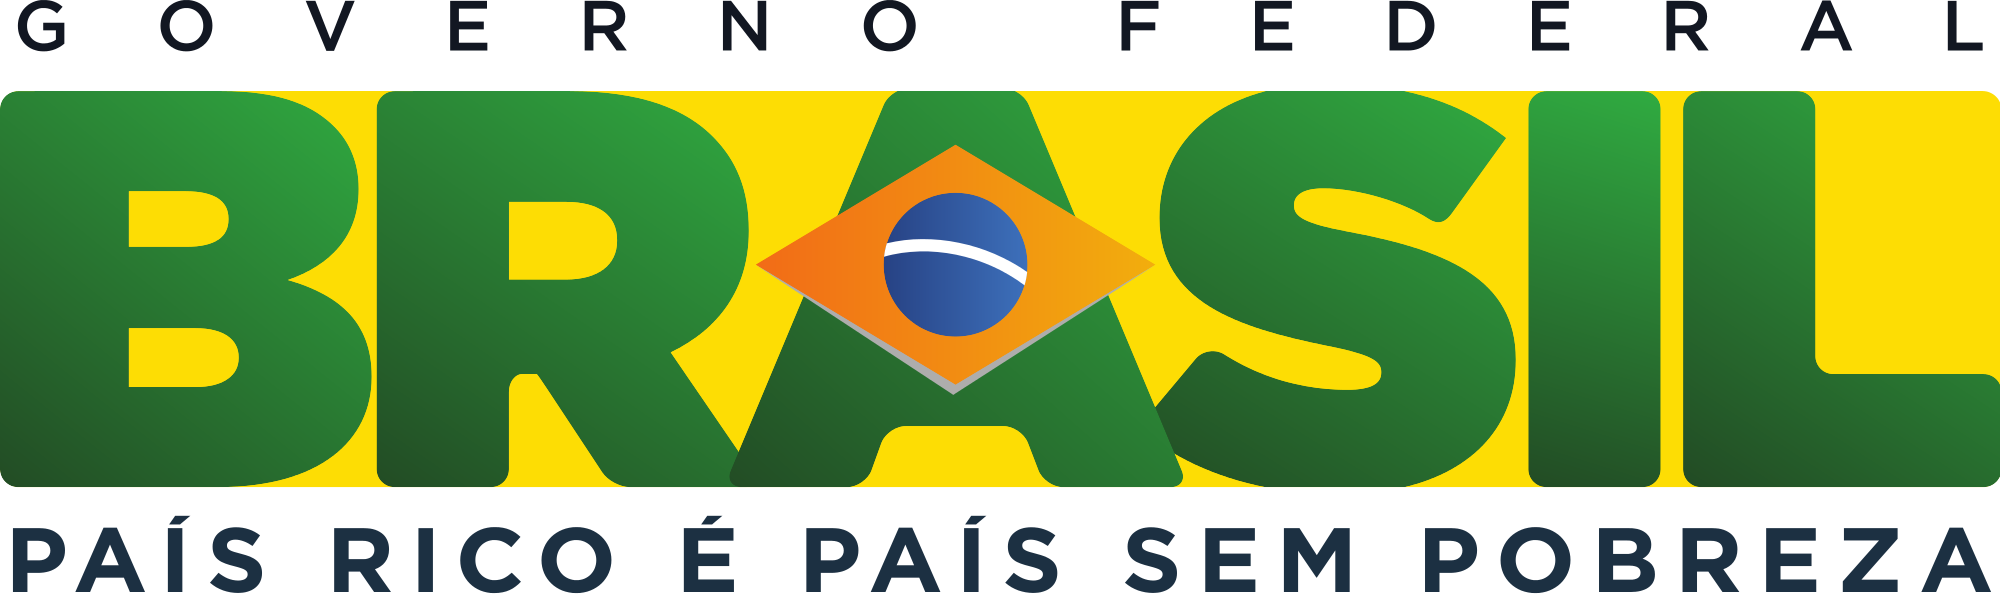 brazilian-government